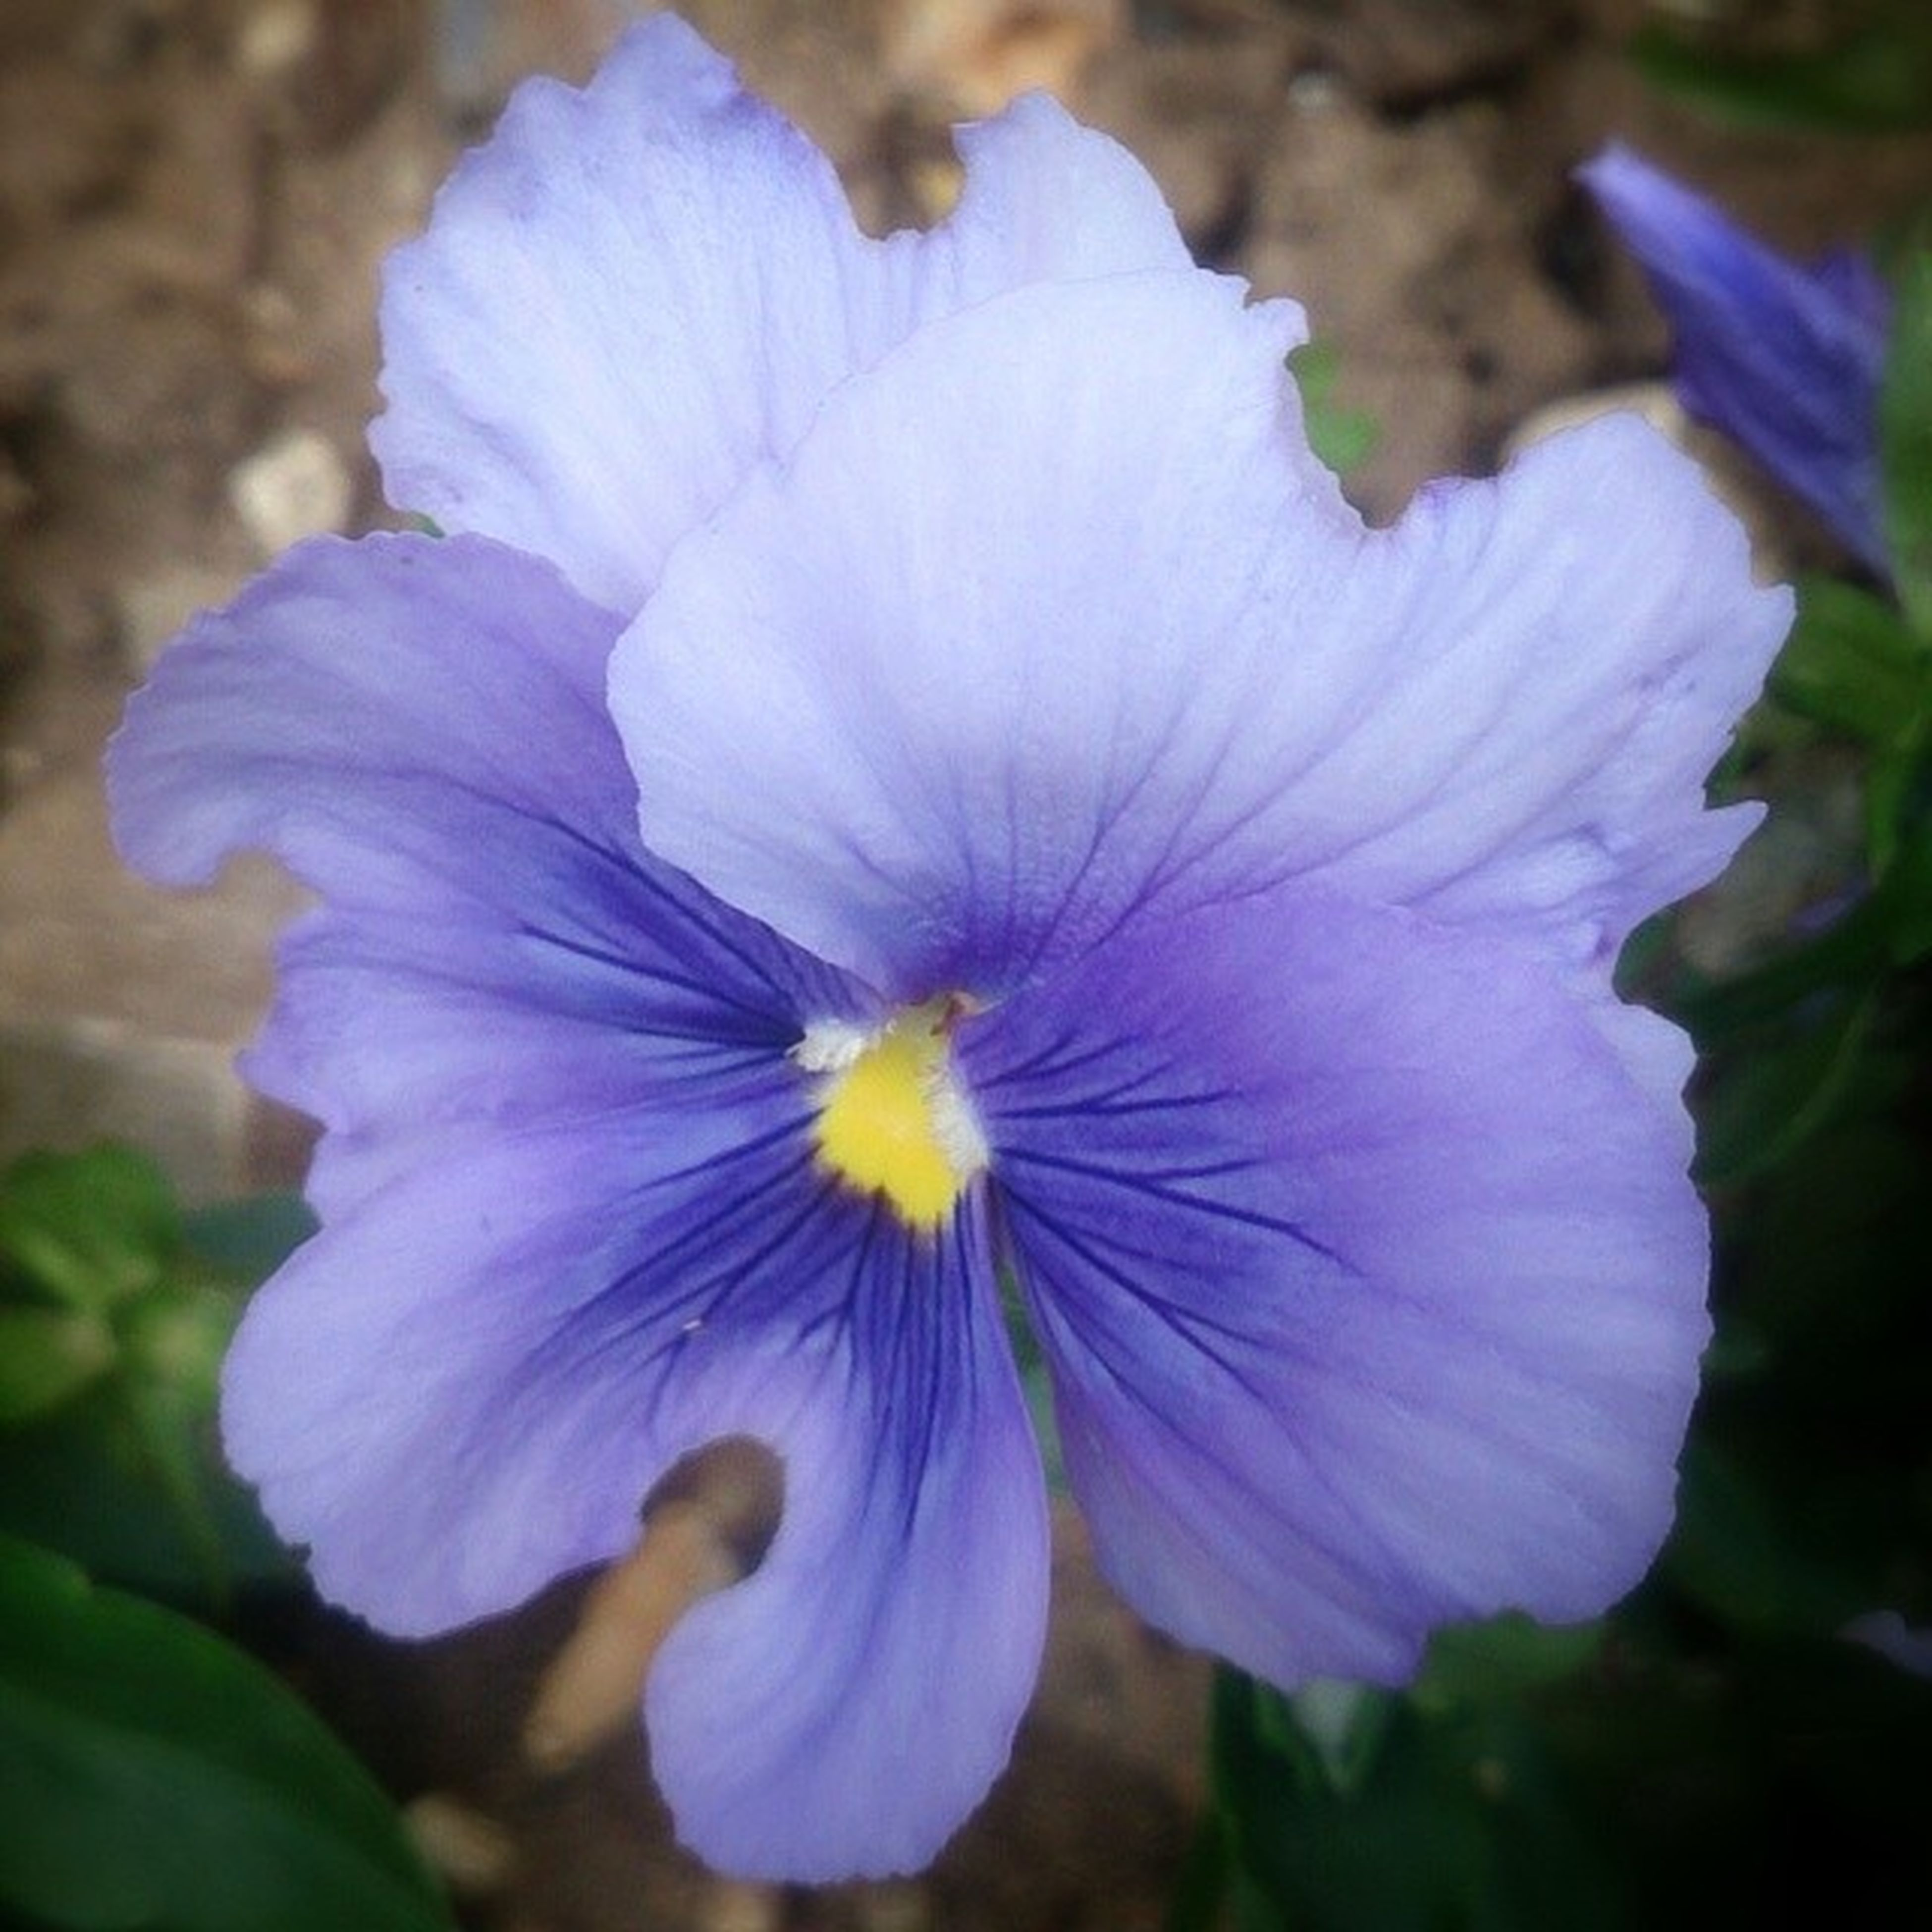 flower, petal, purple, freshness, flower head, fragility, beauty in nature, close-up, growth, blooming, focus on foreground, nature, blue, single flower, pollen, plant, in bloom, stamen, outdoors, day